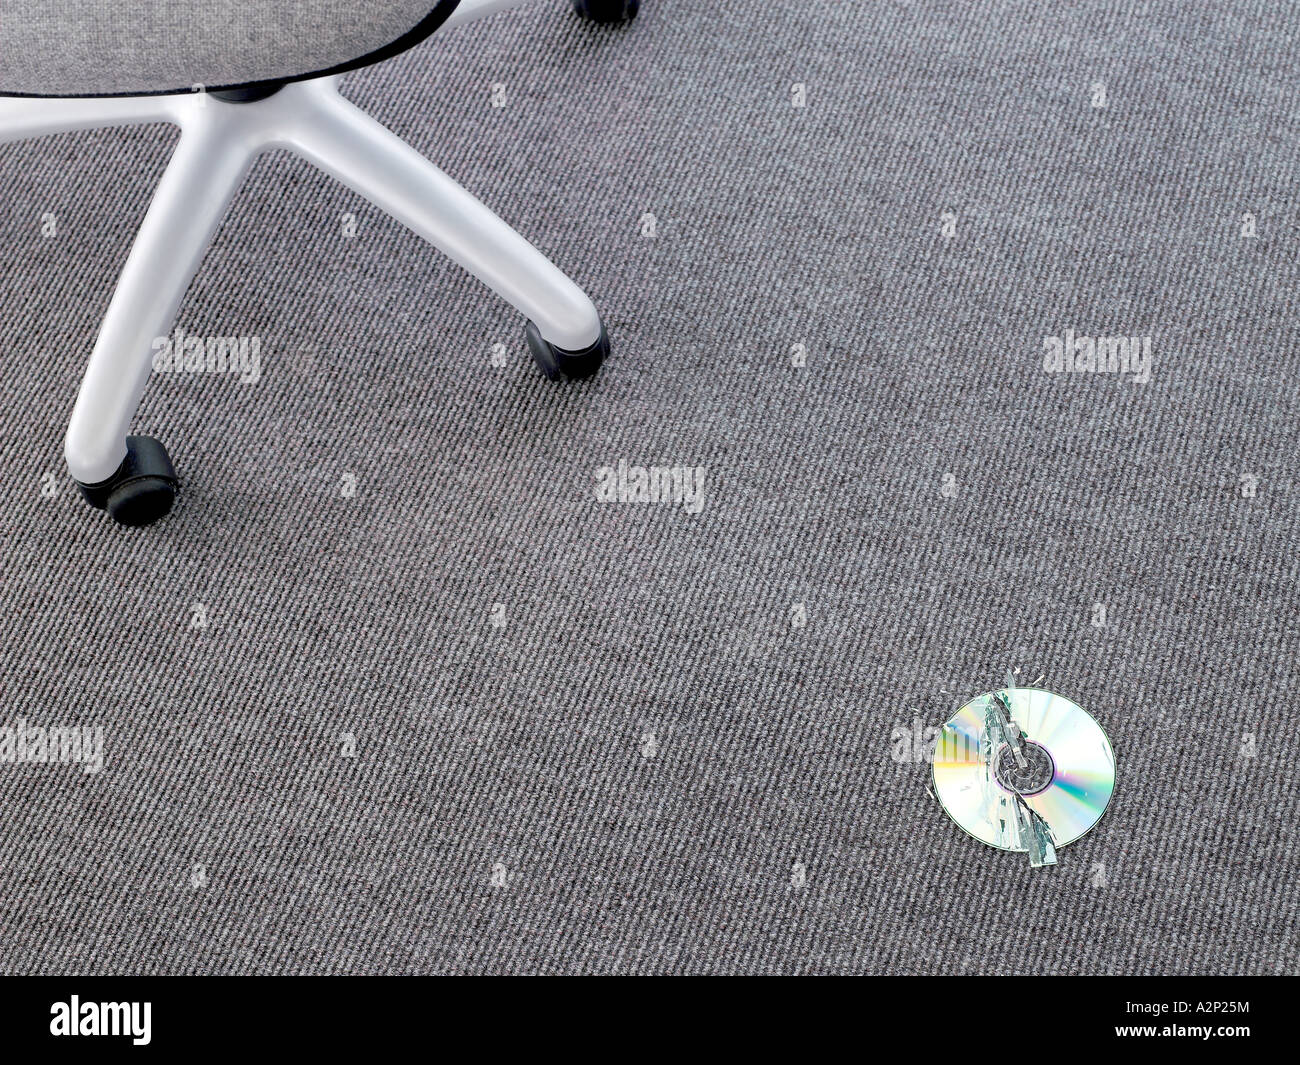 Compact disc broken on the floor - Stock Image